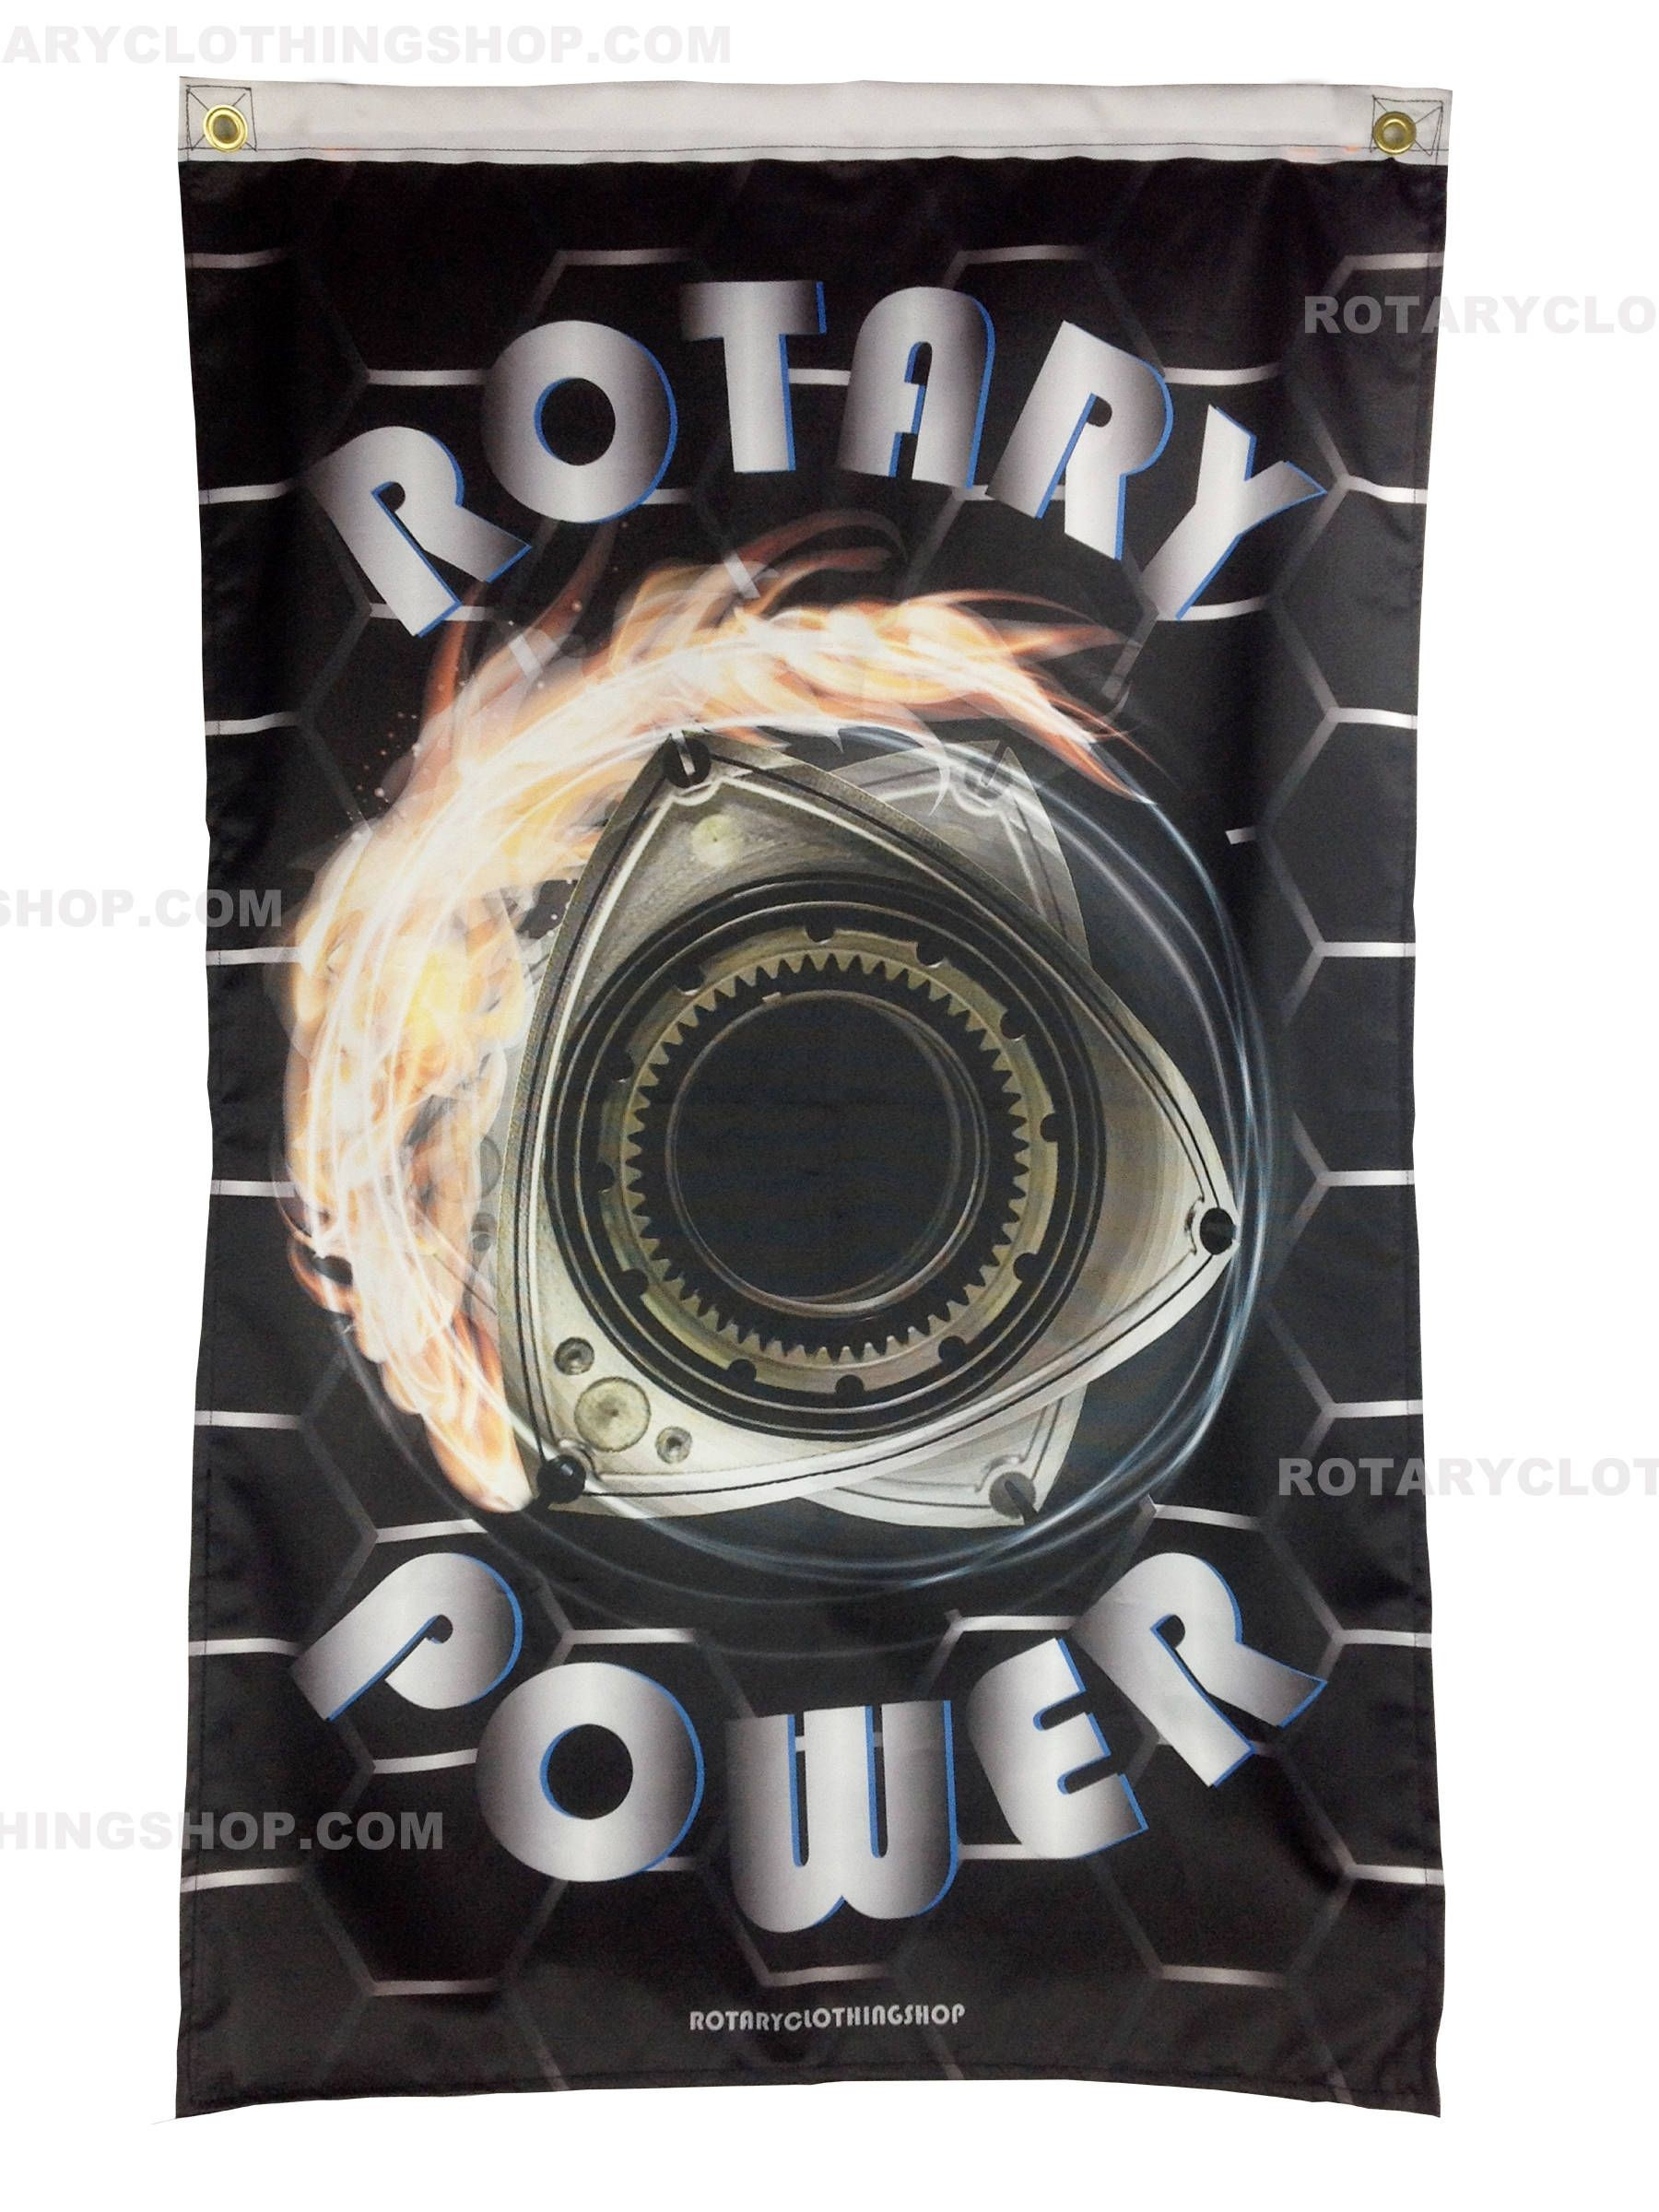 Mazda Rotary Engine Diagram Rotary Power Flag Wankel Banner Rotary Engine Limited Edition Of Mazda Rotary Engine Diagram